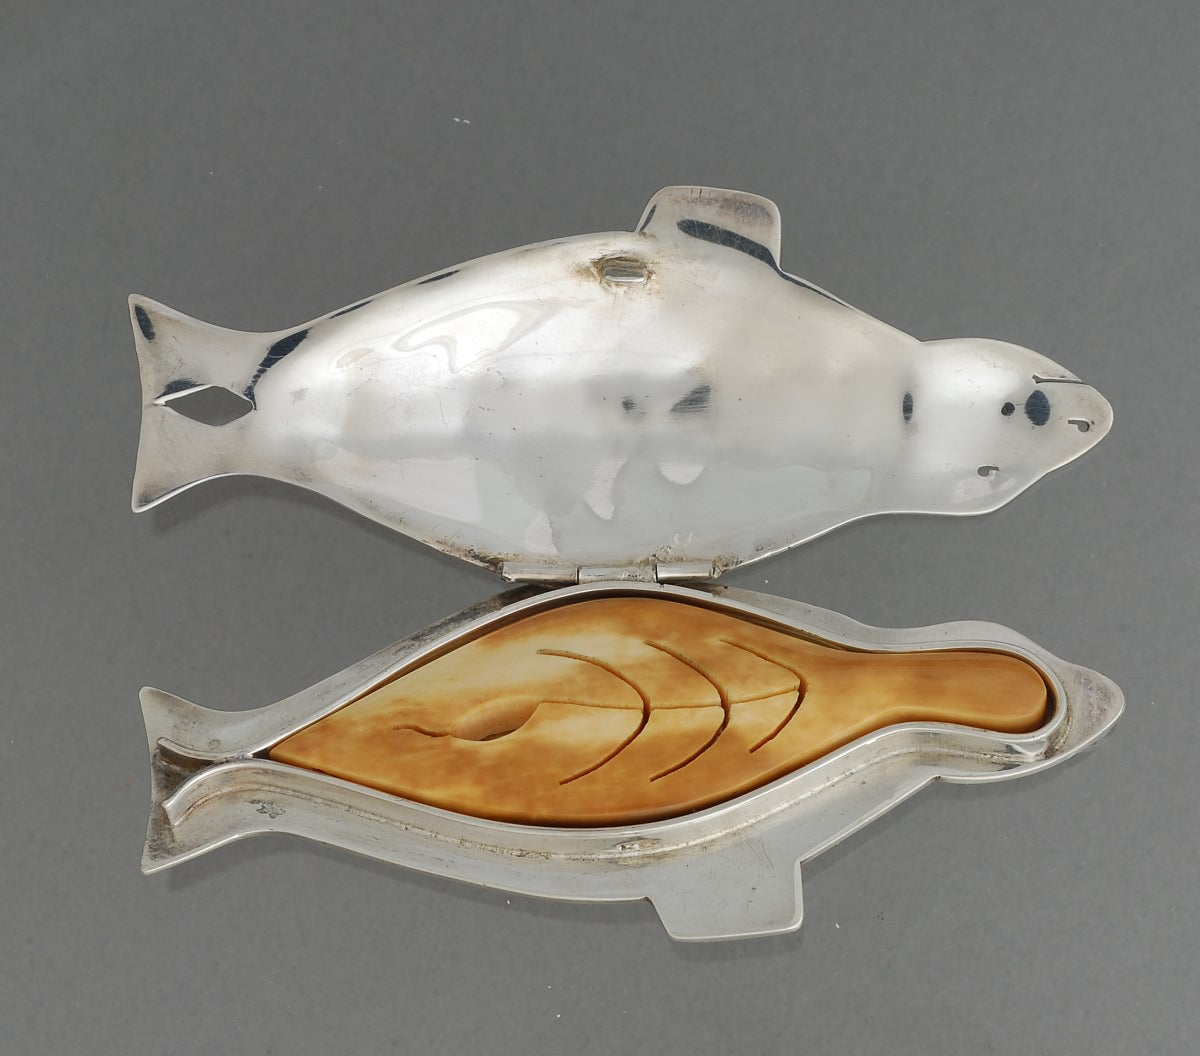 Seal Design Pendant (with removable inner seal) by Denise Wallace